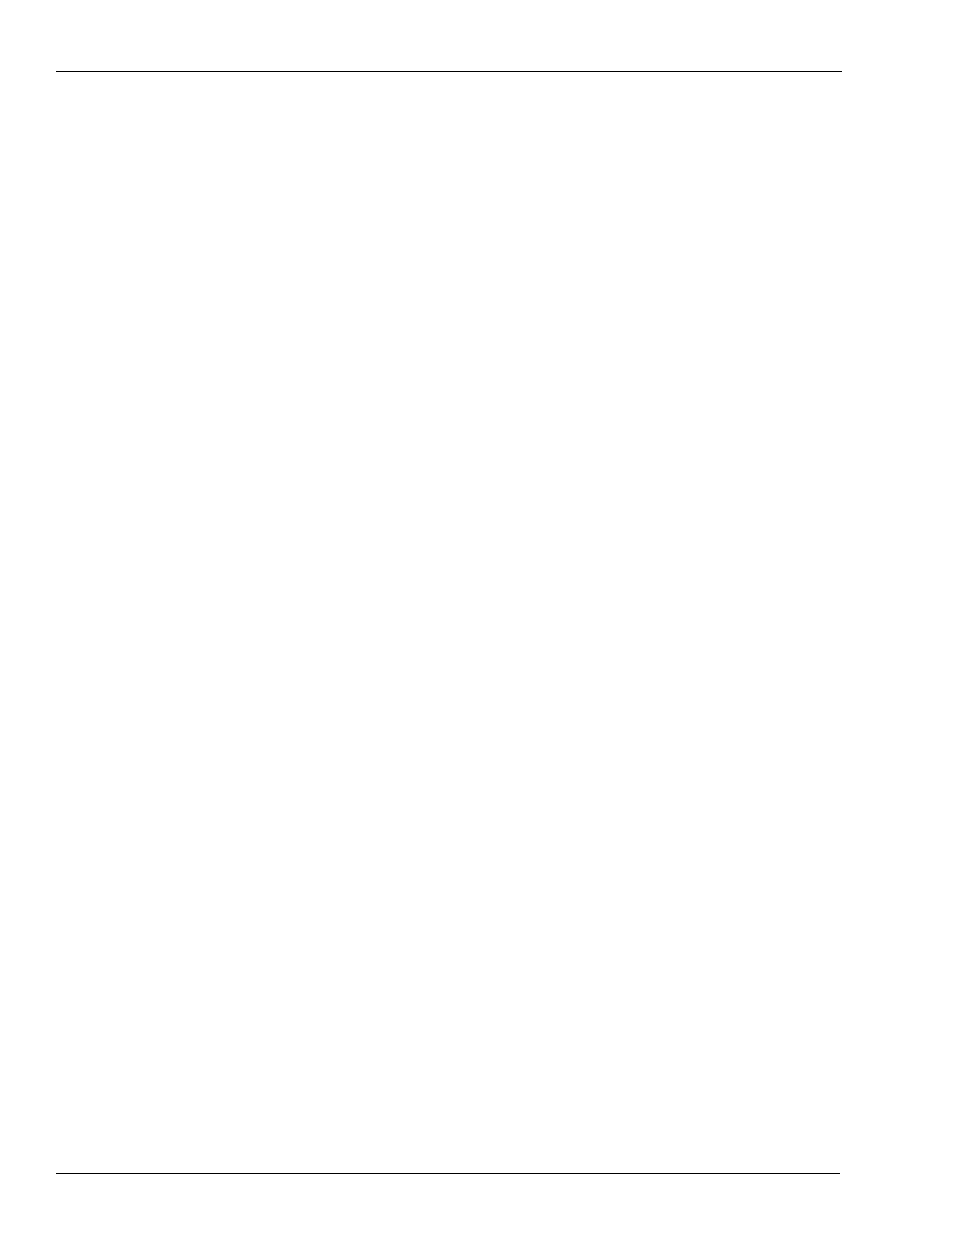 hight resolution of electrical control lines light feed light neutral gasboy atlas fuel systems site prep manual user manual page 24 42